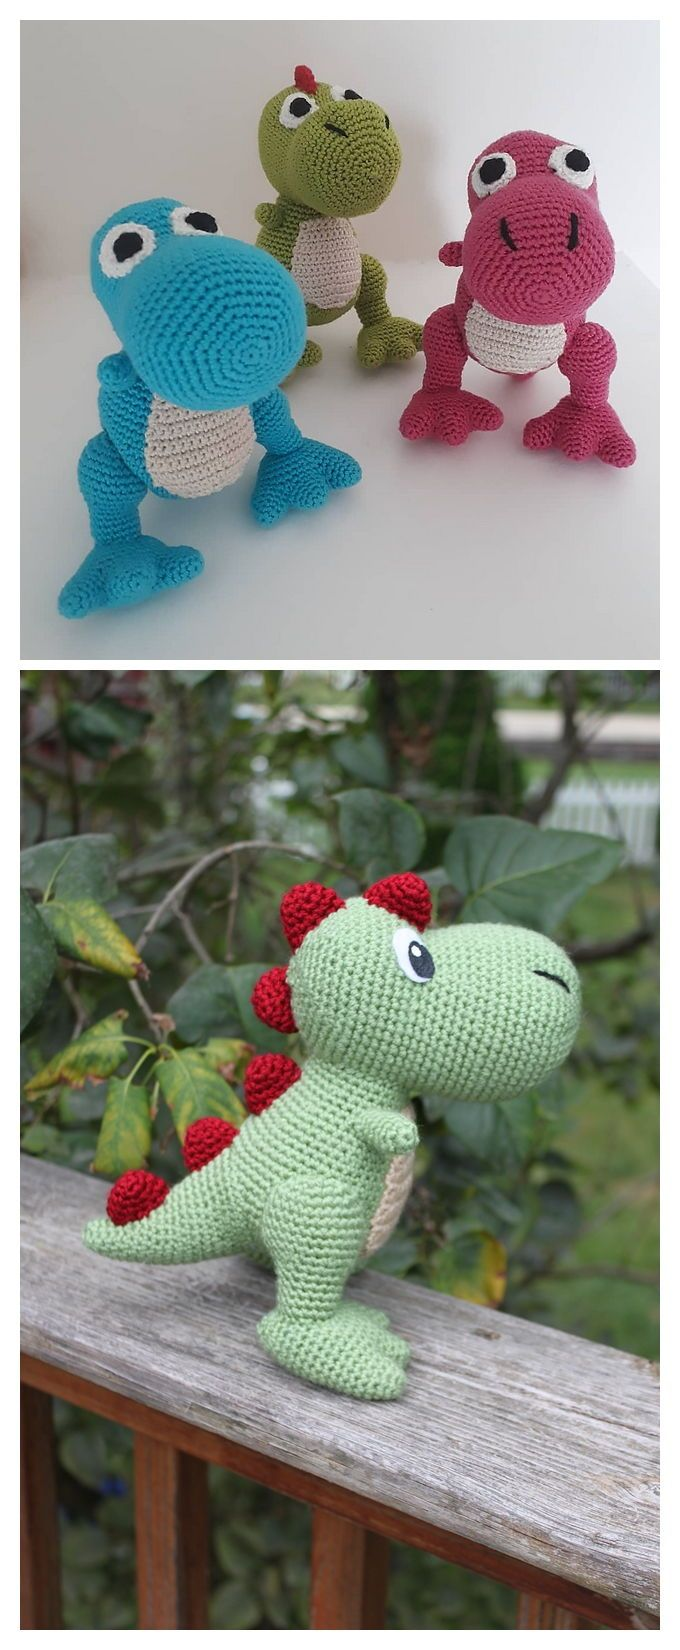 T-Rex Amigurumi Free Crochet Pattern - Knitting Projects ...